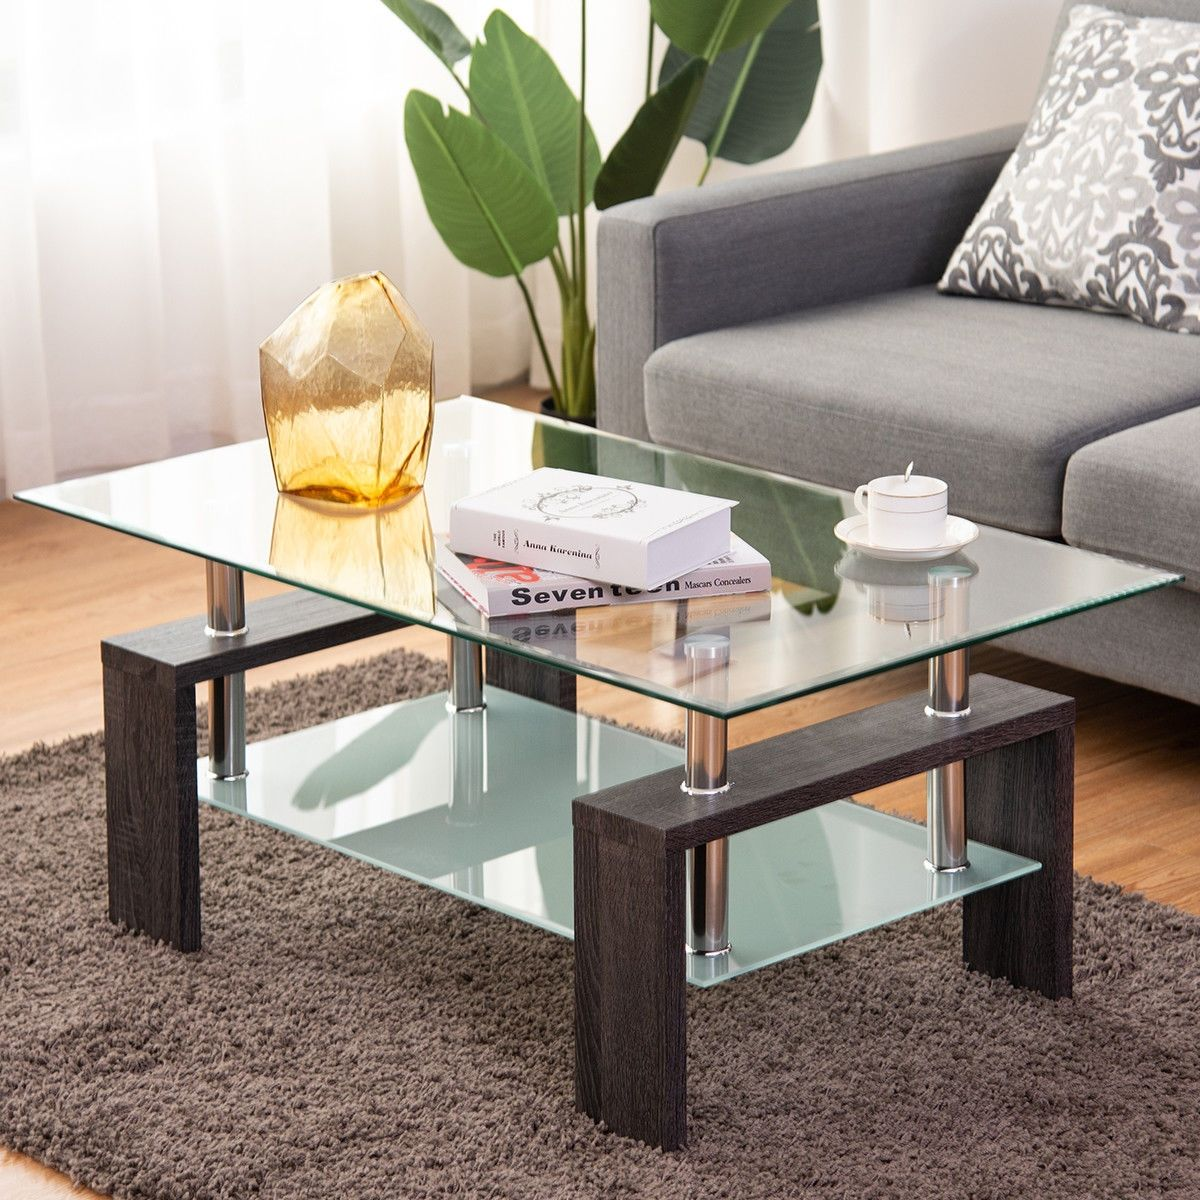 Rectangular Tempered Glass Coffee Table With Shelf Rectangular Glass Coffee Table Coffee Table Wood Furniture Living Room [ 1200 x 1200 Pixel ]